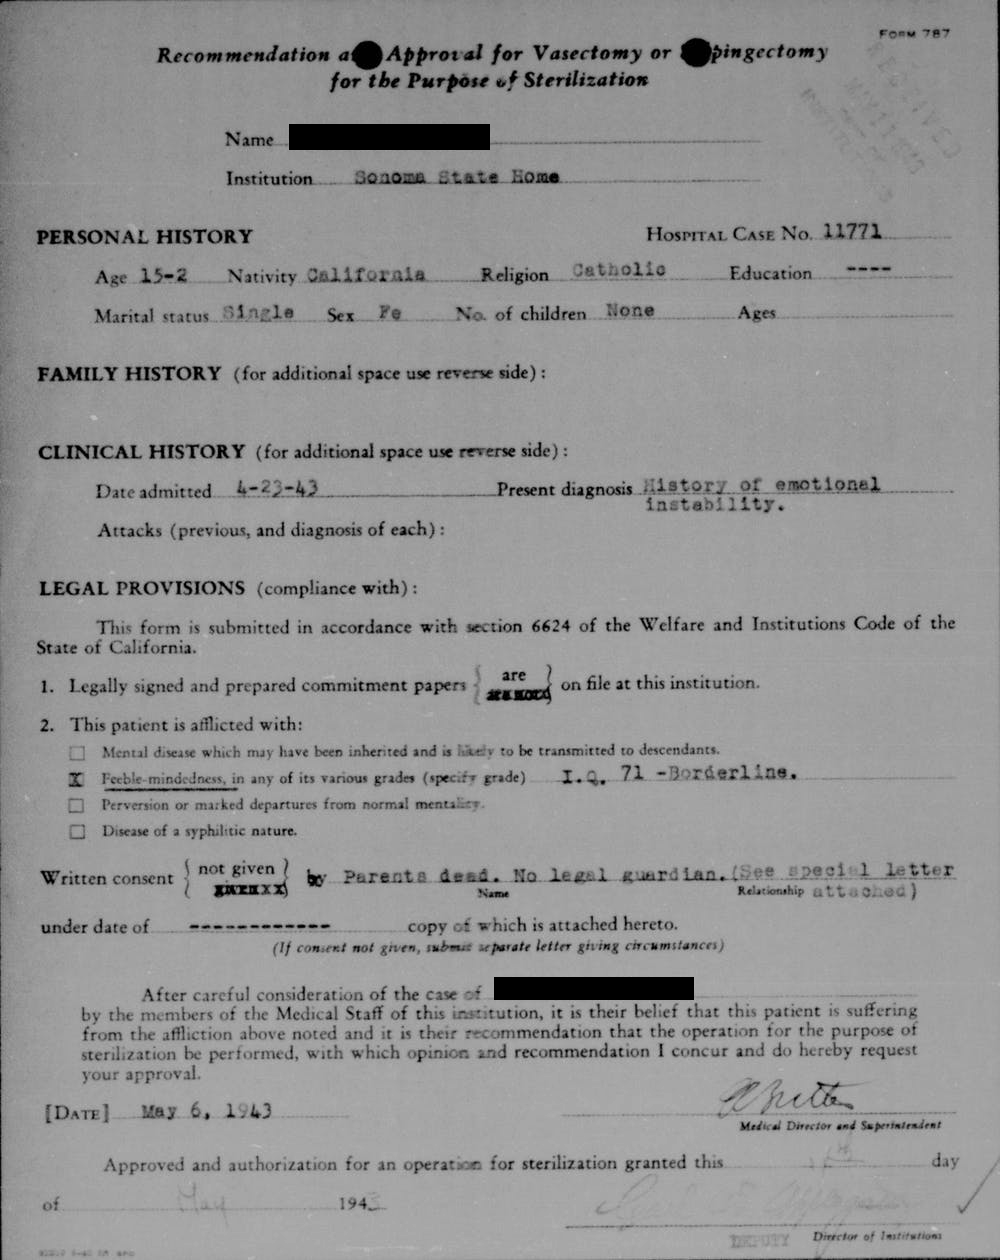 A sample sterilization form for a 15-year-old woman in California